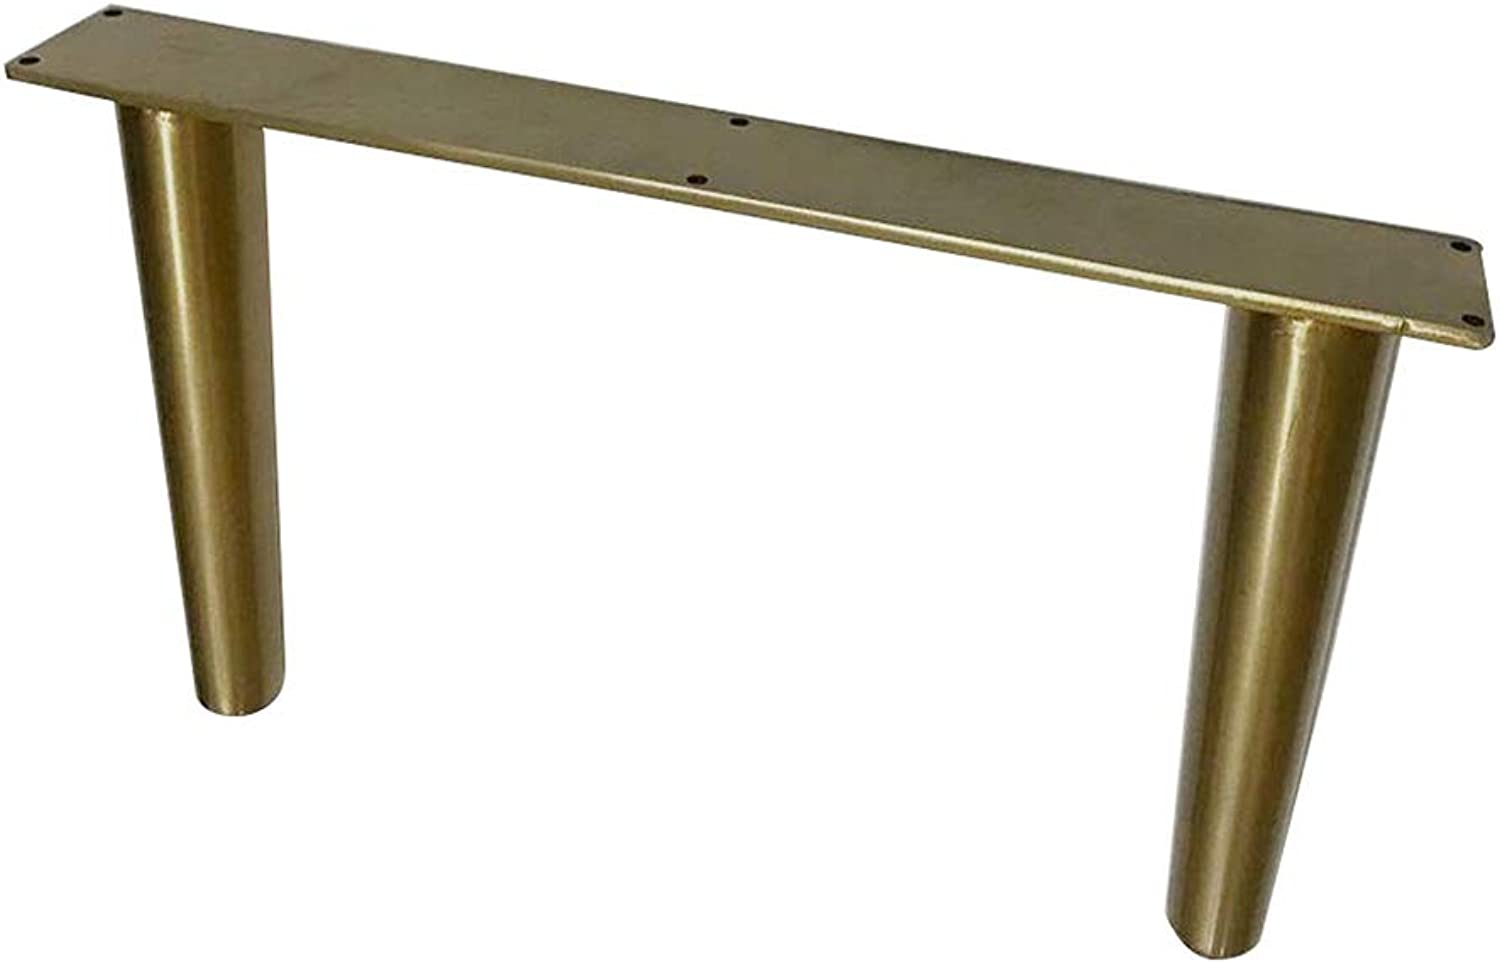 Furniture legs, 2  Stainless Steel furniture legs, H200mm Furniture Connecting Legs, Coffee Tables and Chairs Support Legs TV Cabinet Accessories